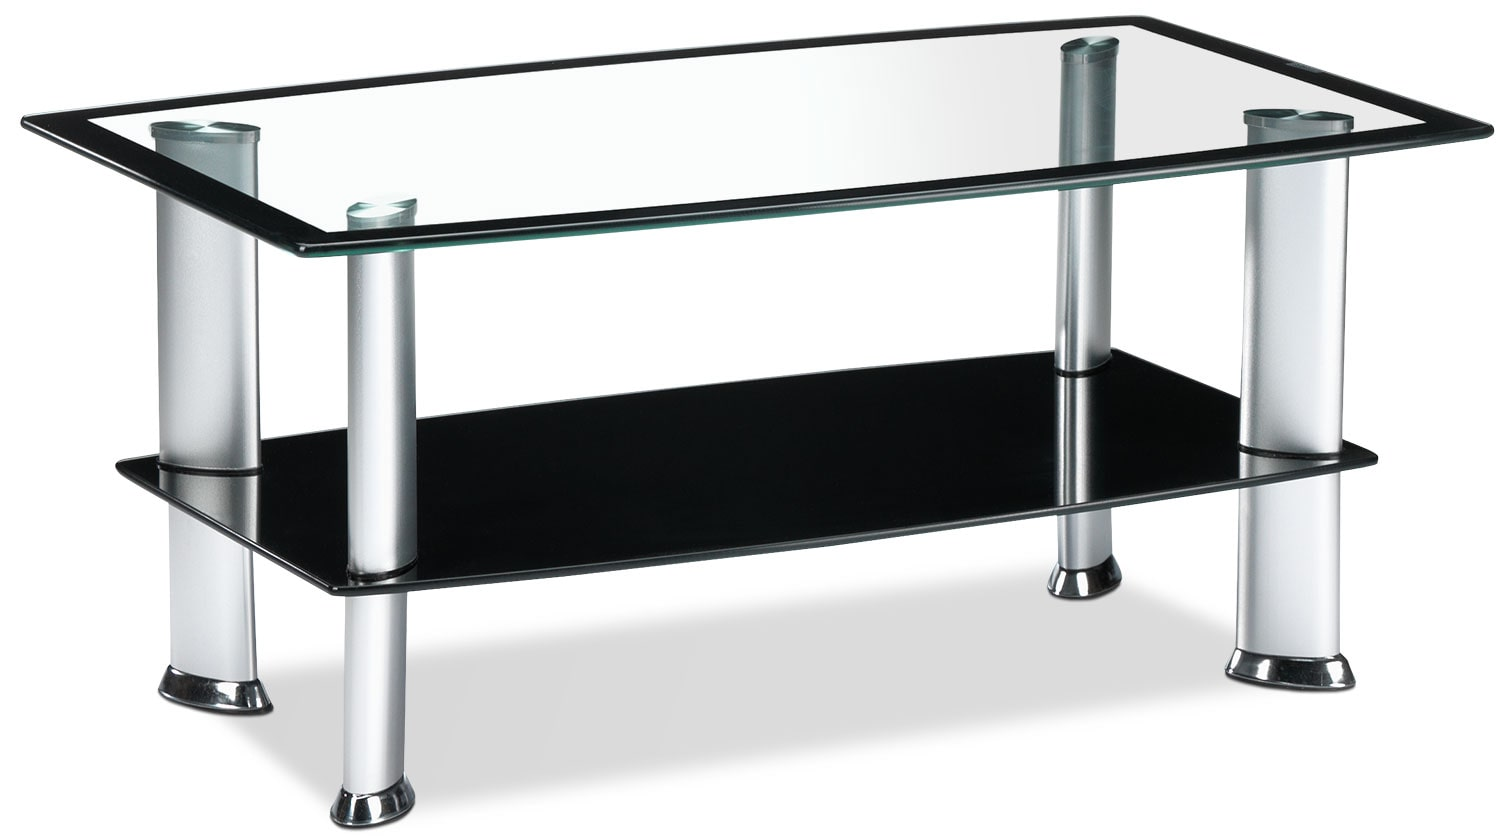 coffee tables  leon's - delta coffee table  silver and black